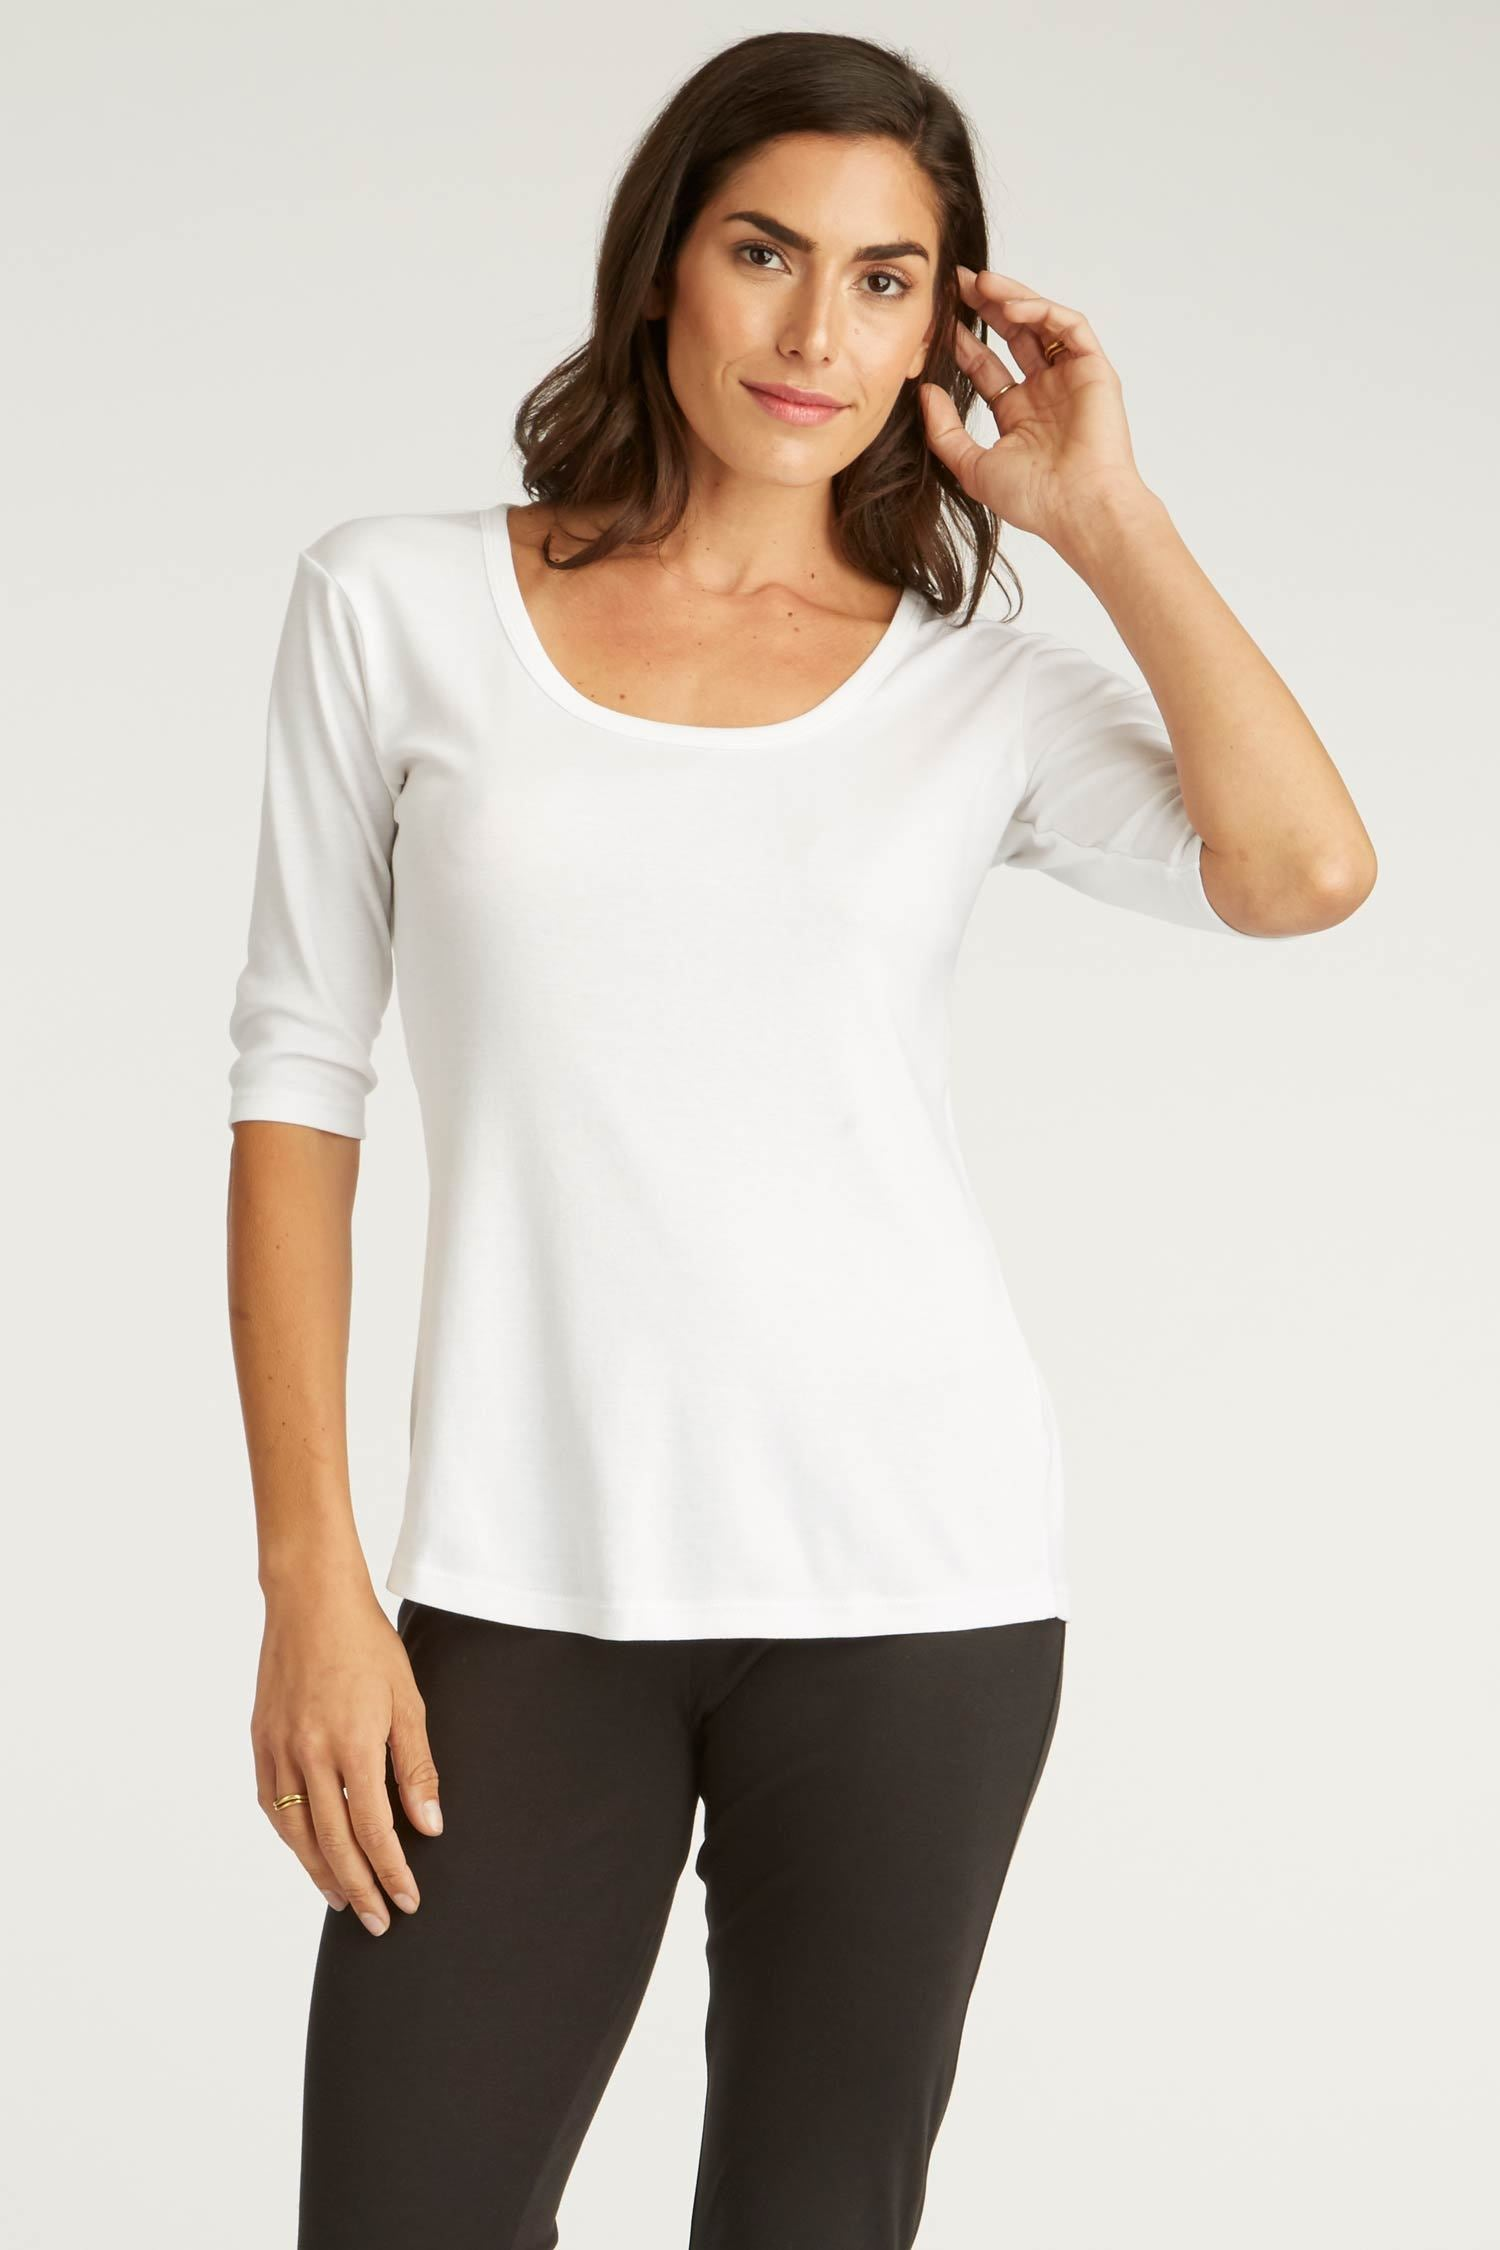 Womens Organic Cotton Top | White Scoop Neck Tee by Indigenous